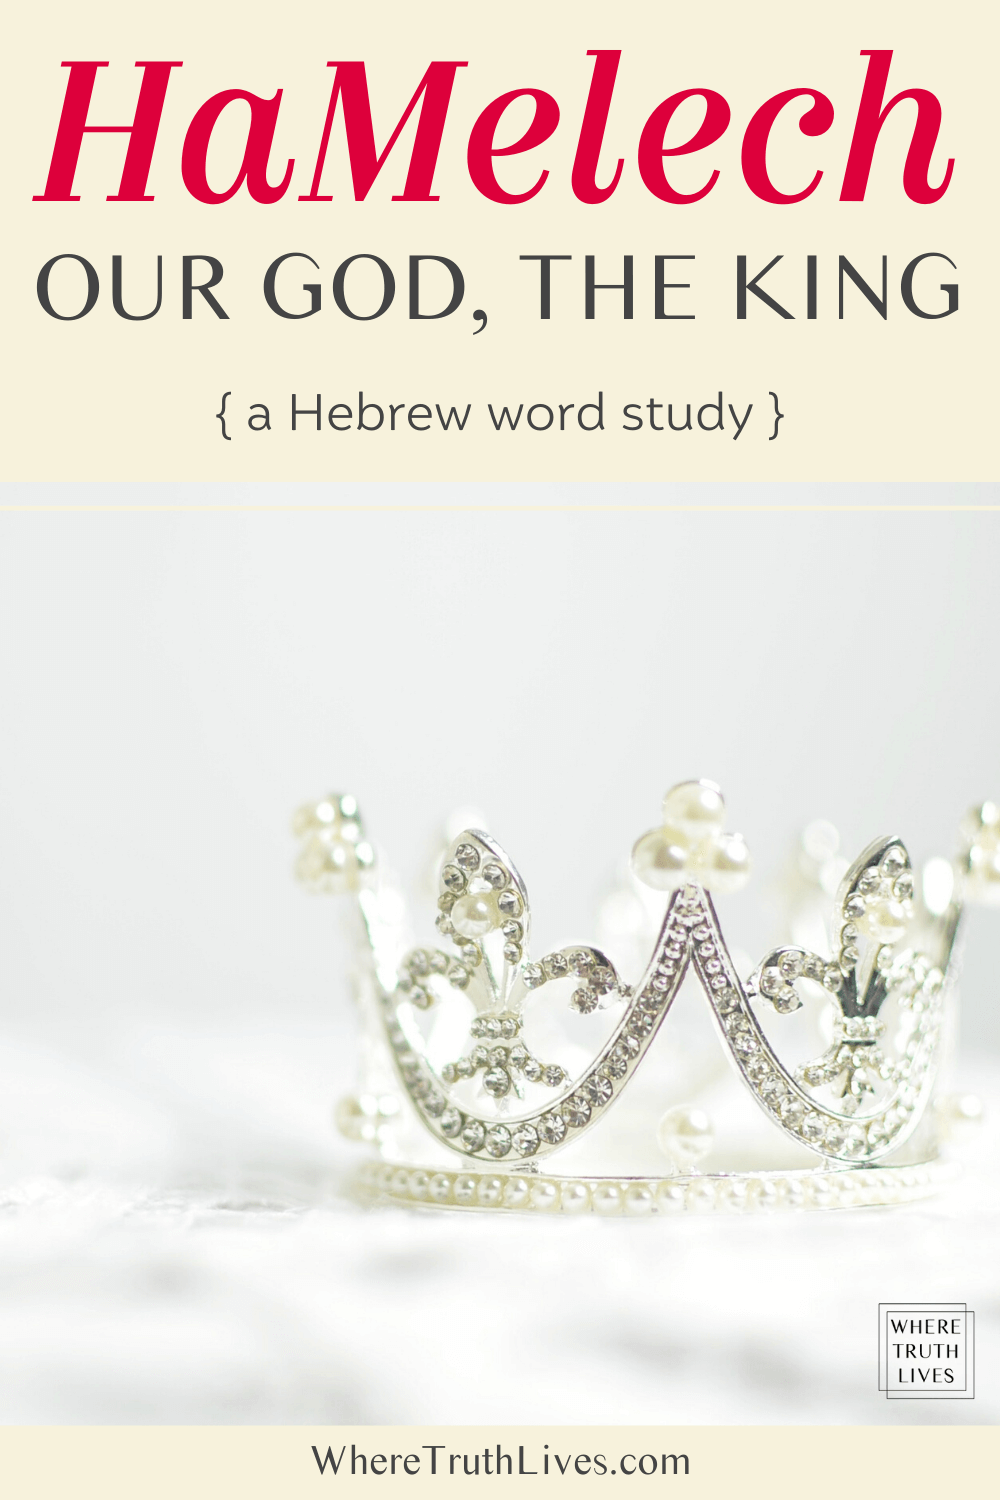 A short Hebrew word study on HaMelech, the King, looking at both the Old Testament and New Testament to discover and declare that our God reigns - forever!